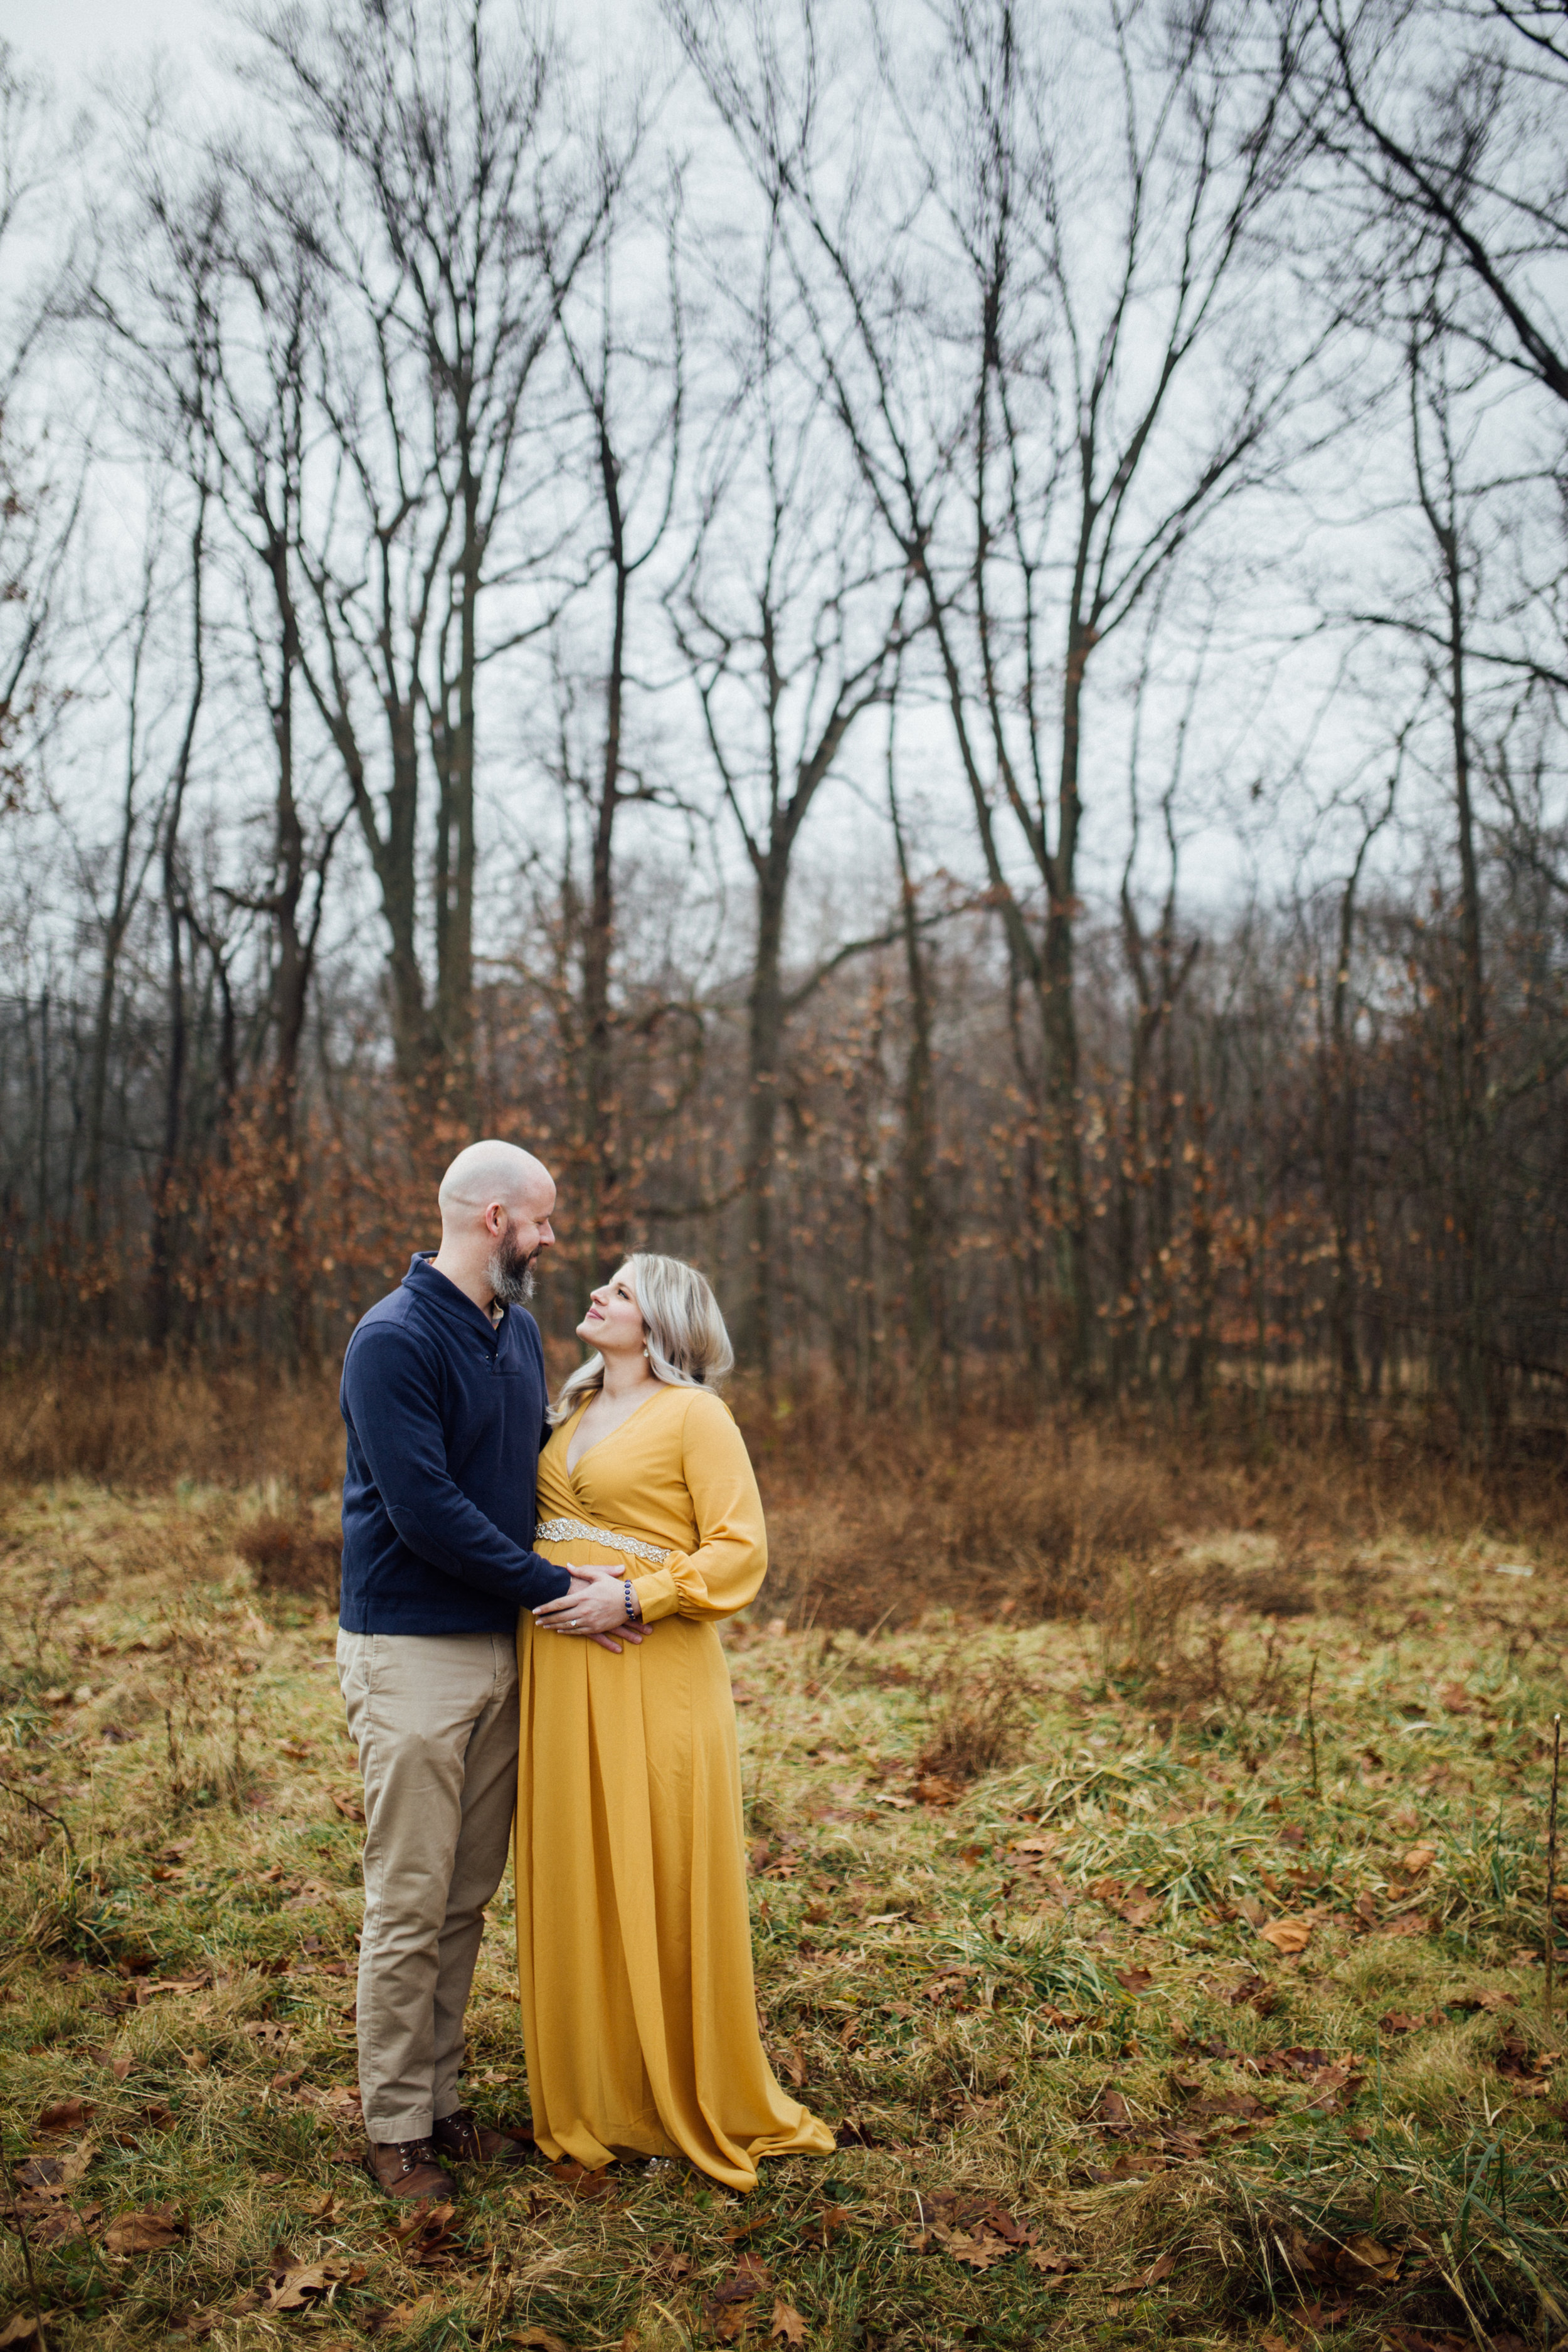 Carrie Hall Photography // Cleveland, Ohio // Maternity and Newborn Photographer